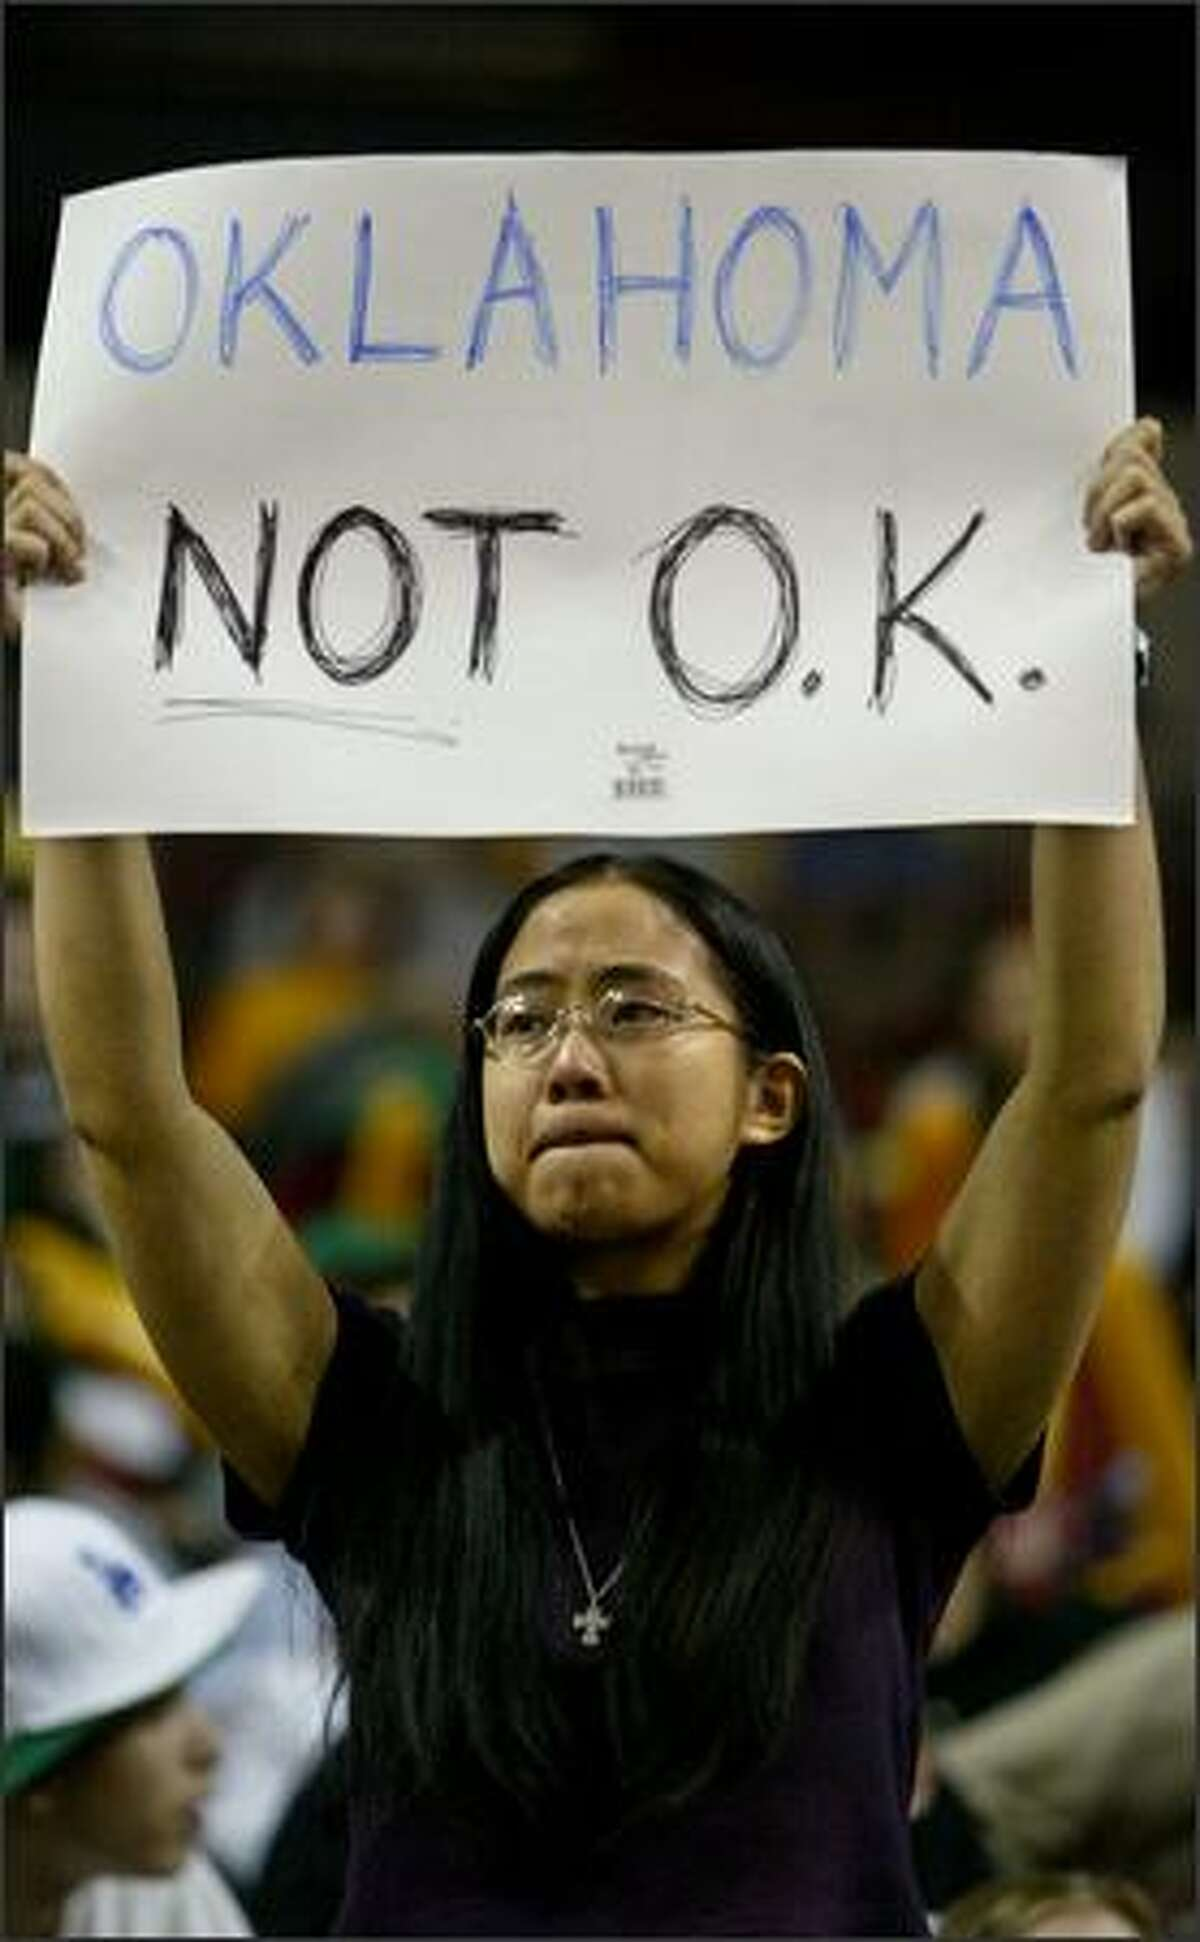 Seattle Storm season ticket holder Becky Chow holds up a sign protesting the sale of the team and the Seattle SuperSonics as other fans cheer during a game against the Sacramento Monarchs. The Monarchs won, 74-61.